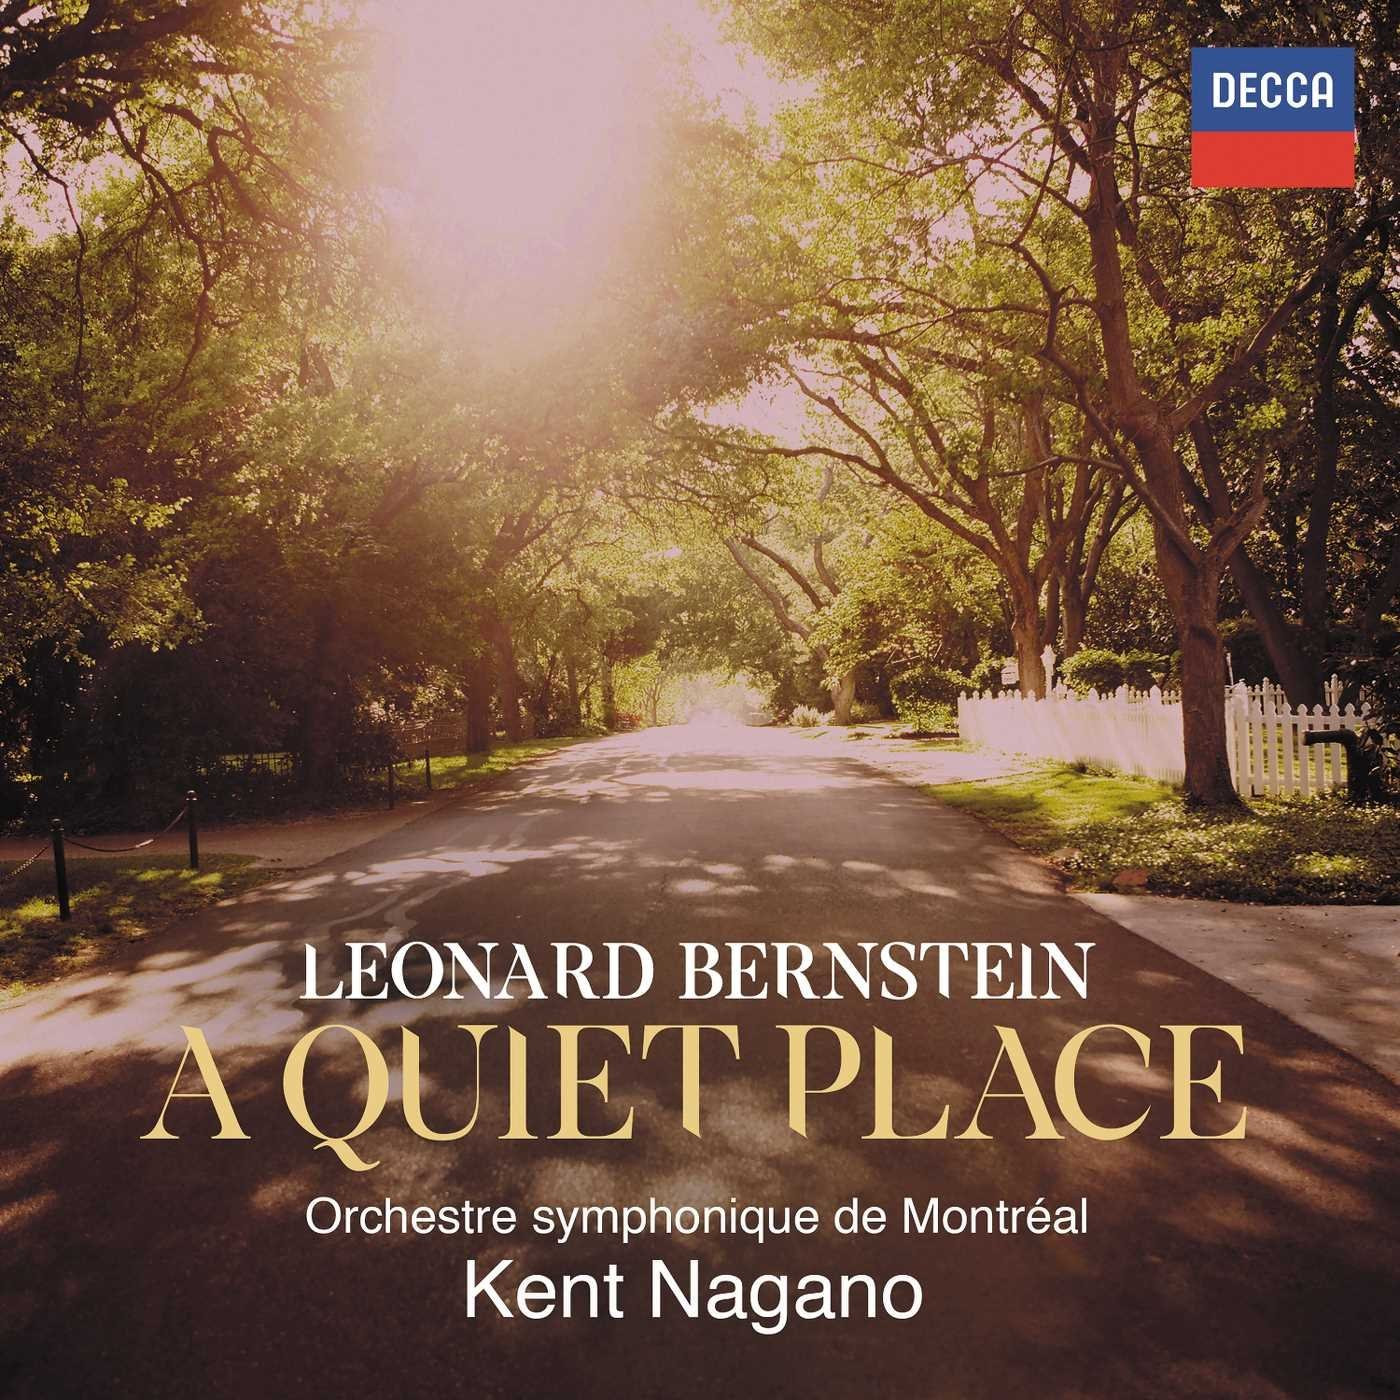 IN REVIEW: Leonard Bernstein - A QUIET PLACE (DECCA 483 3895)